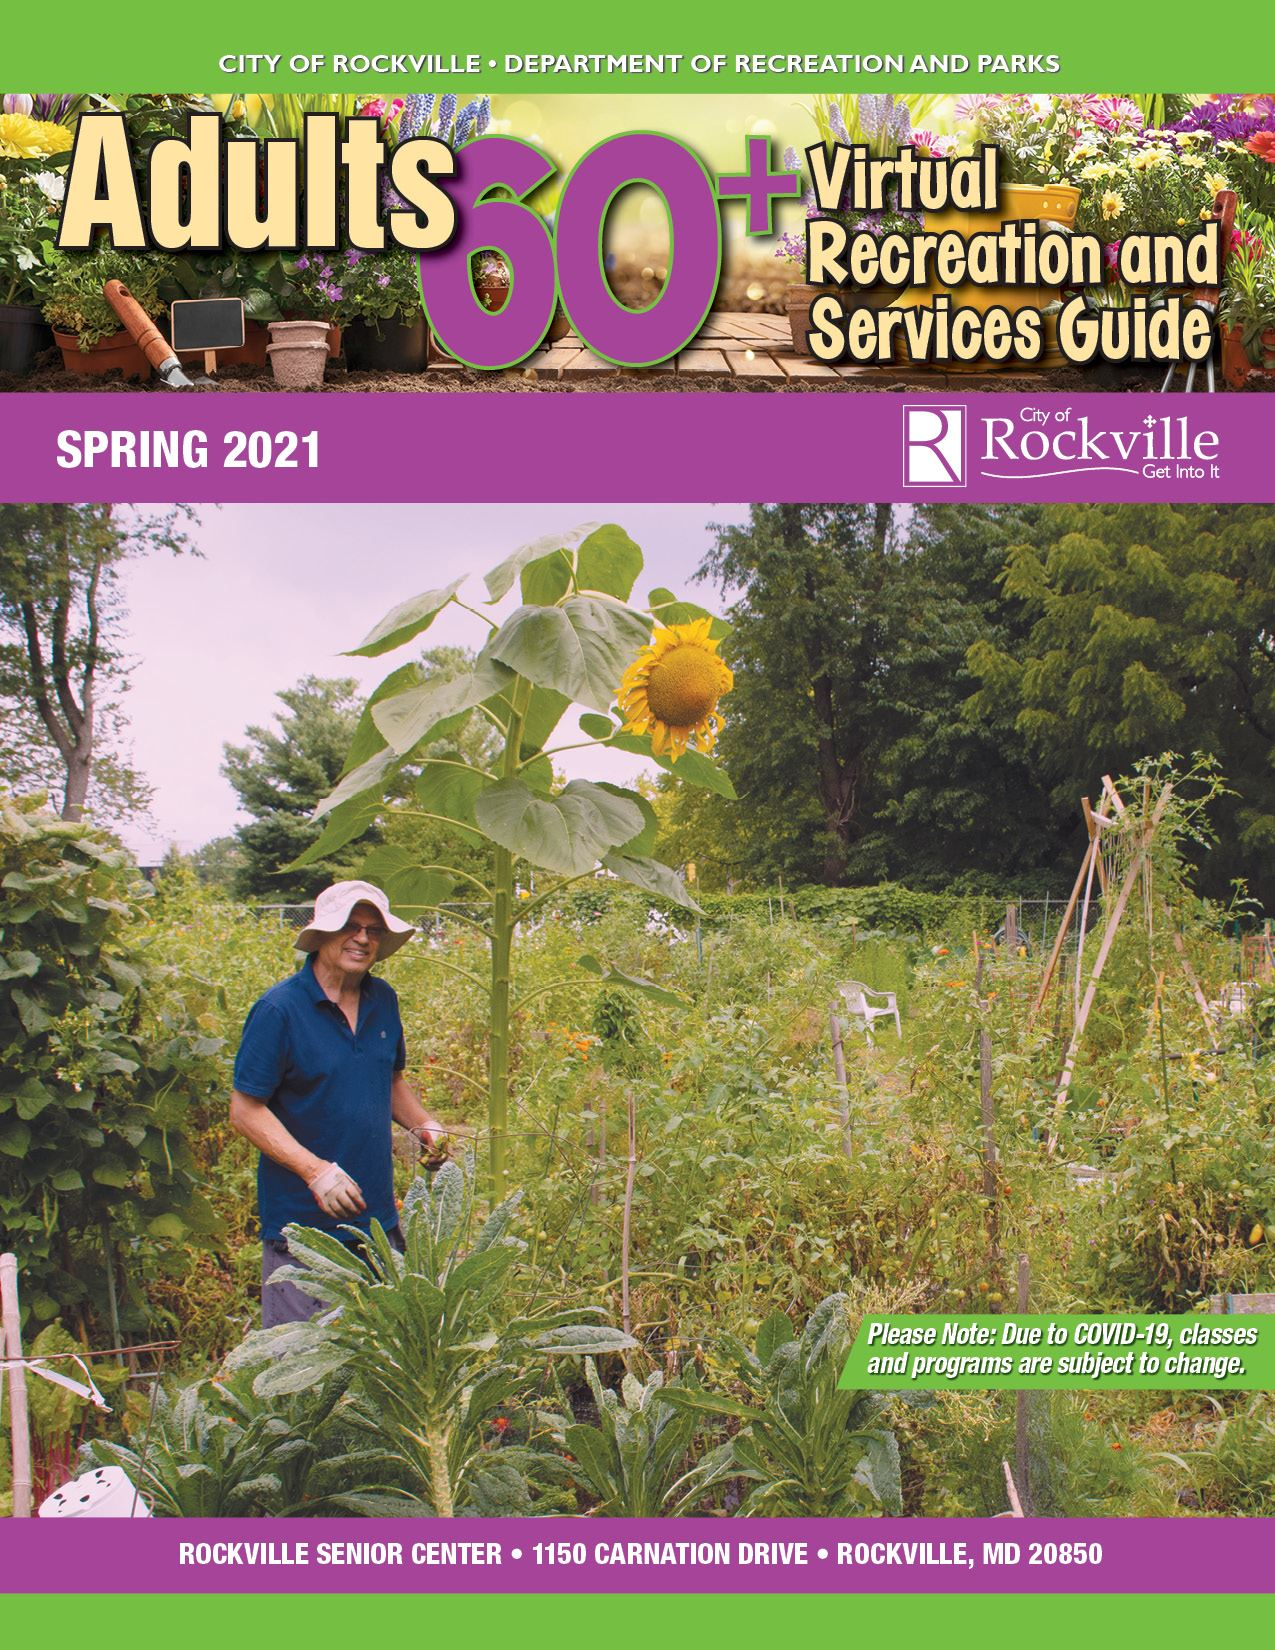 Adults 60+ Spring 2021 Recreation Guide Cover